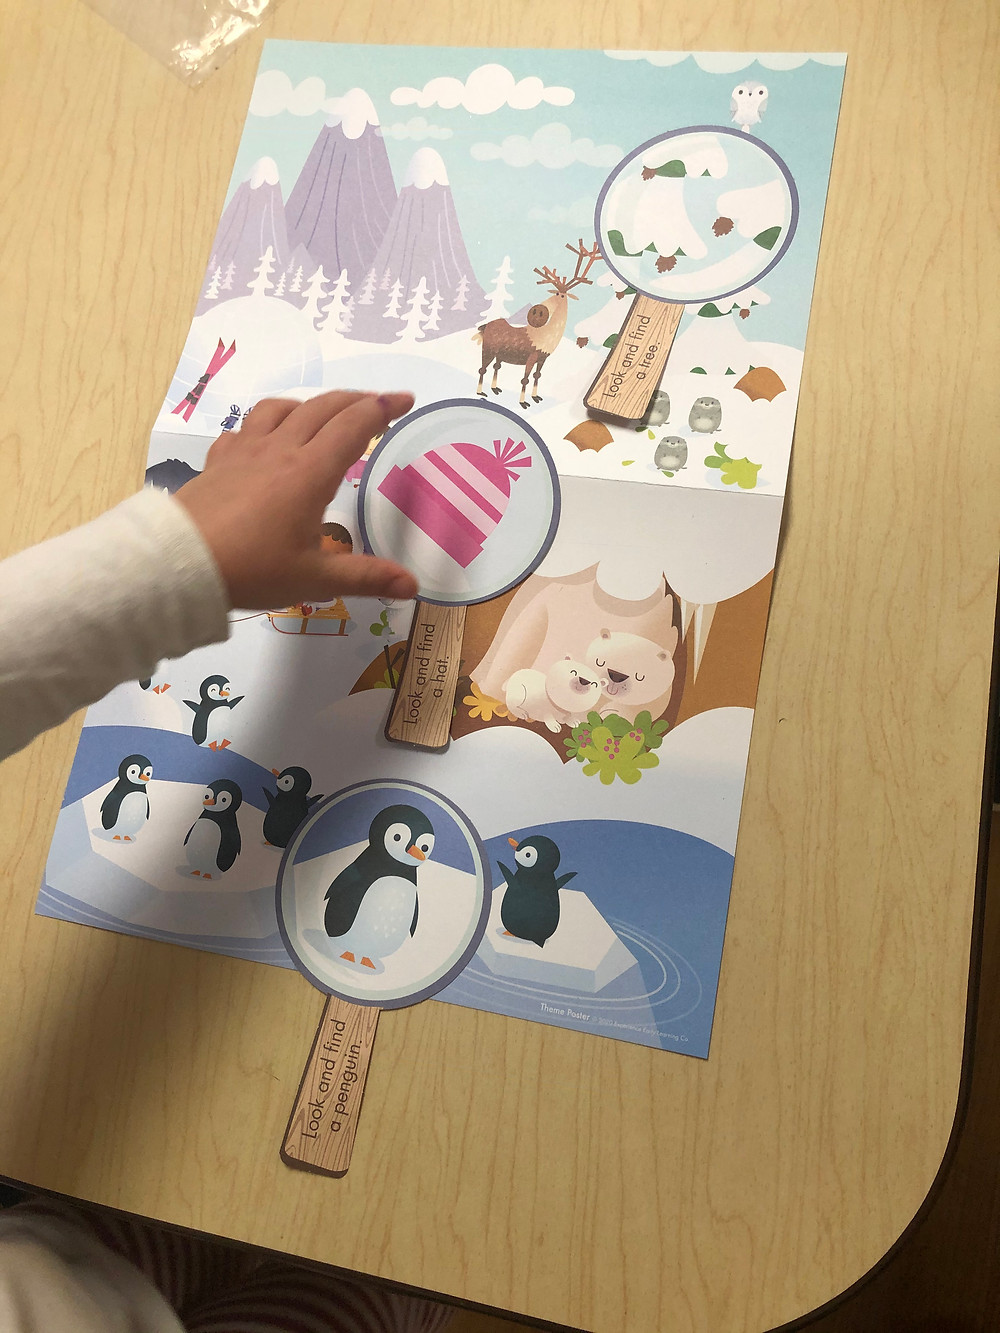 preschooler using pretend magnifying glass to explore monthly theme poster